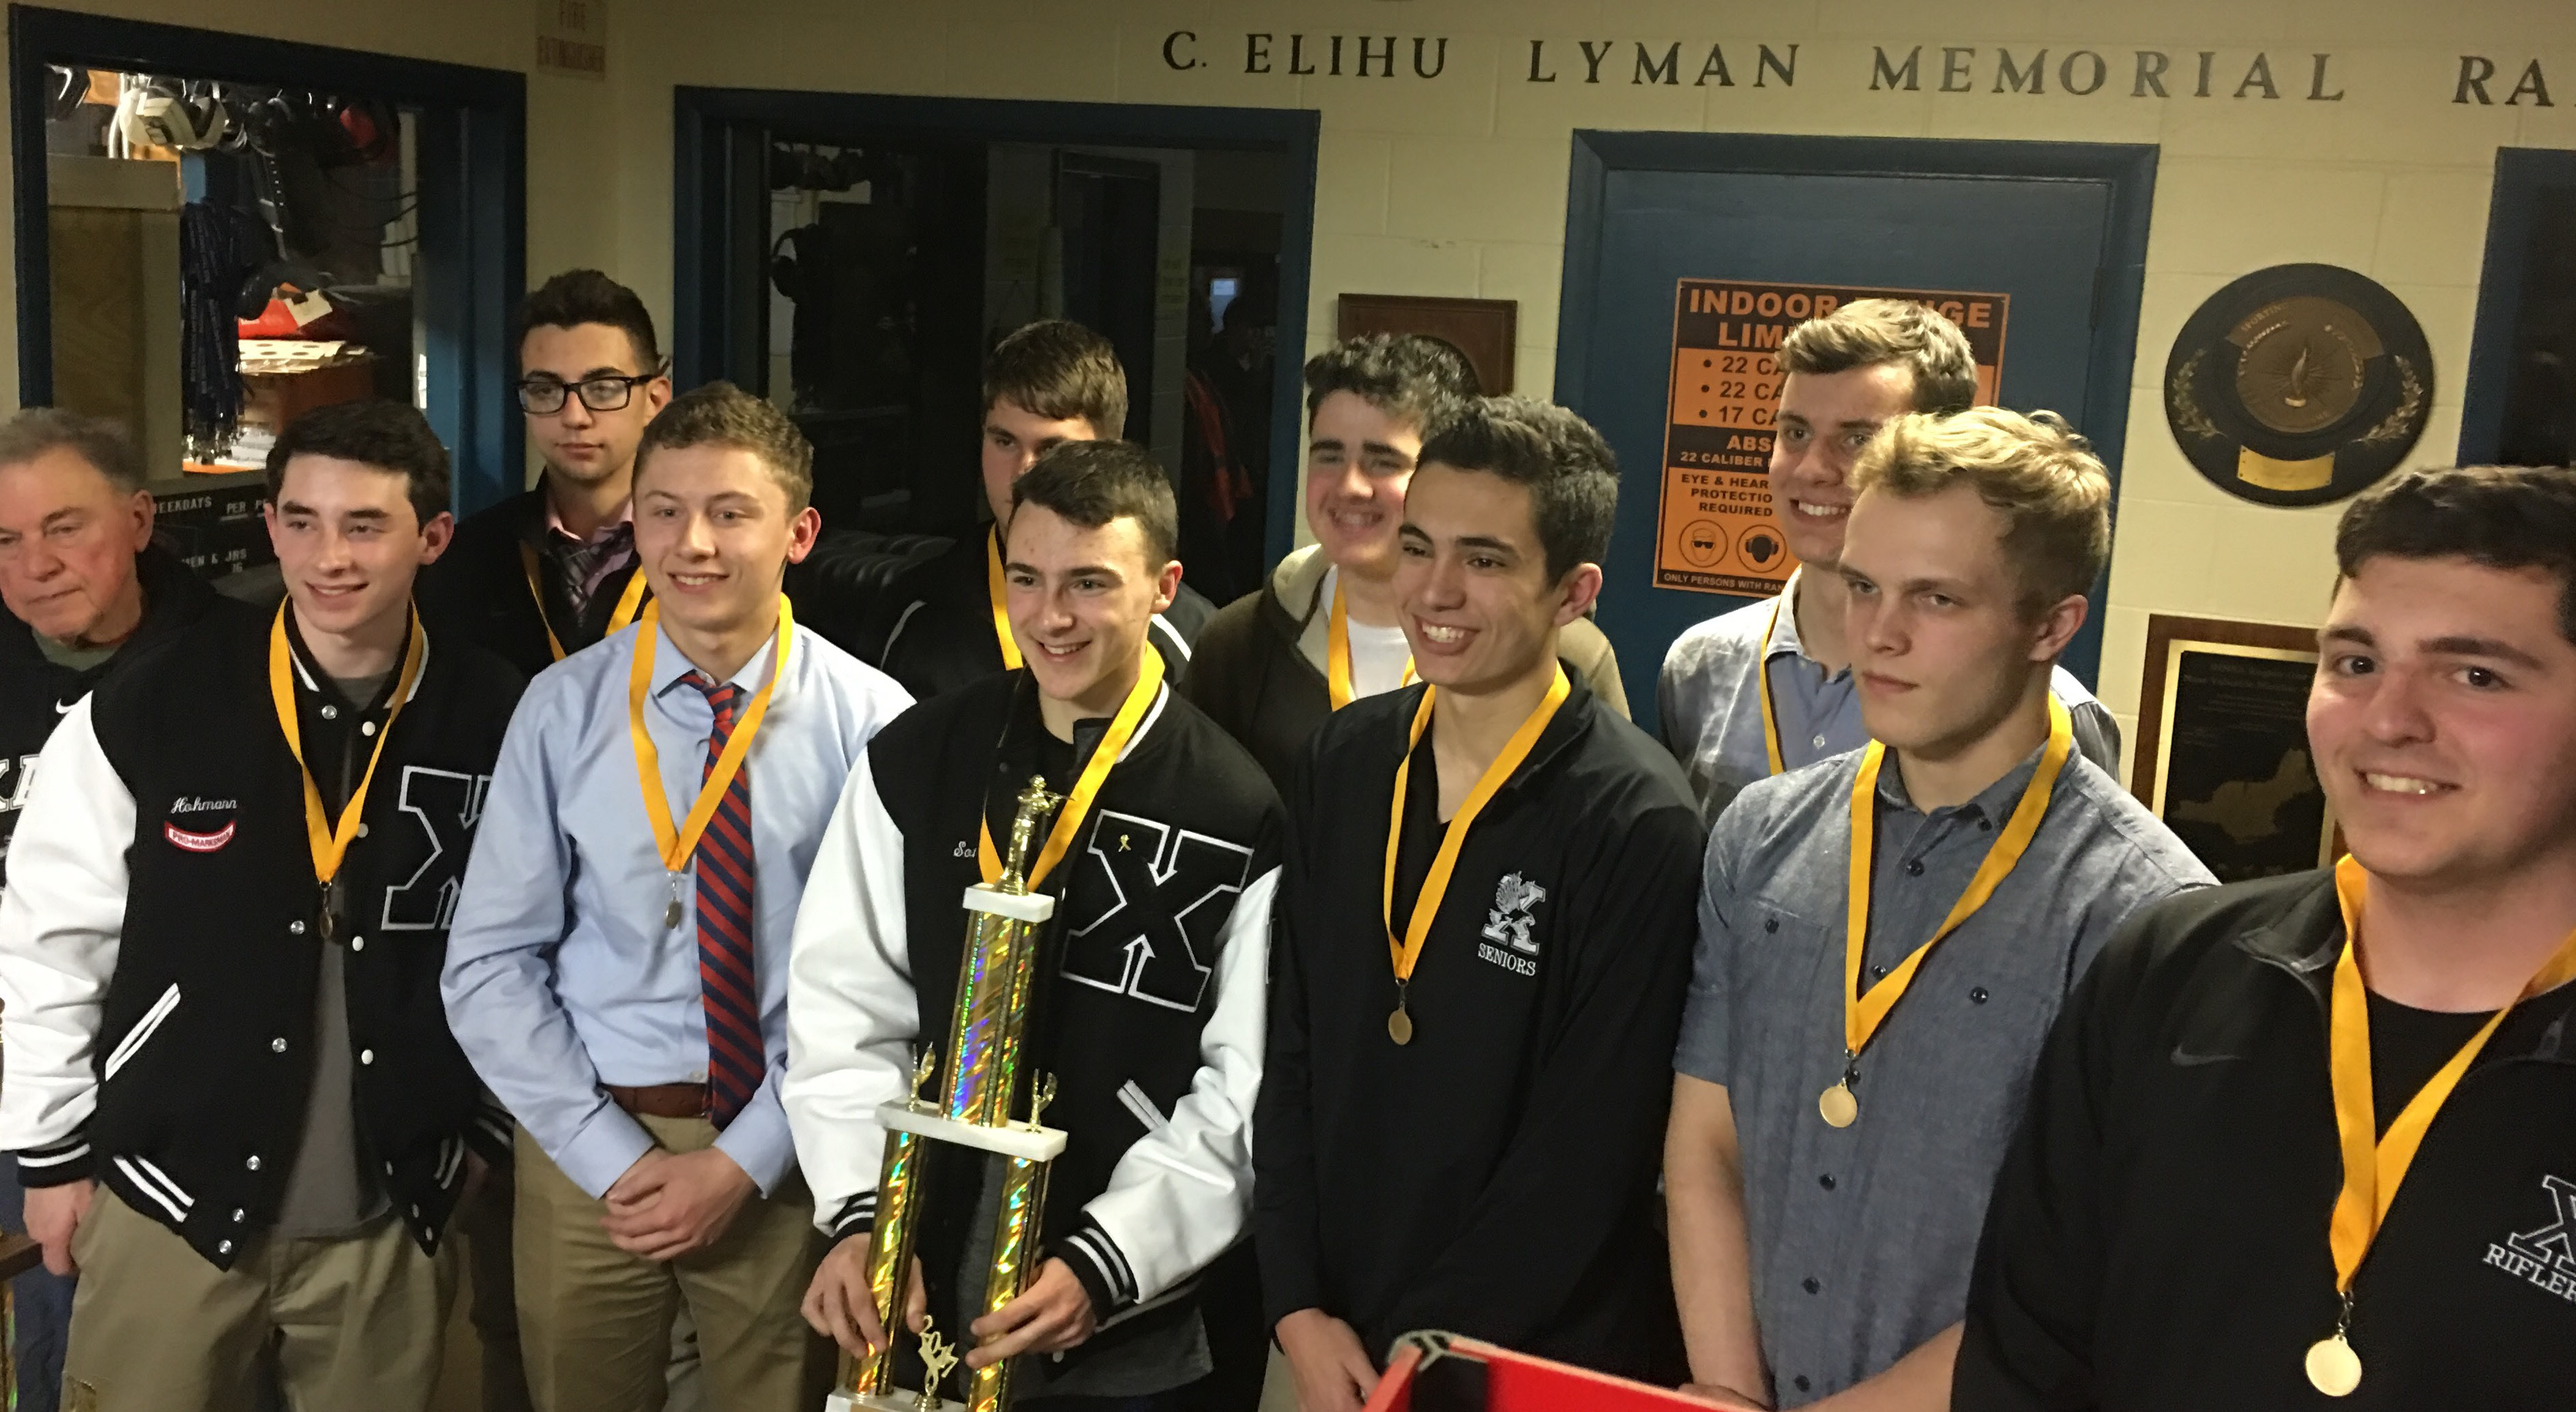 The Xavier High School varsity rifle team was crowned Central Connecticut Conference champions at Blue Trail Range following the state rifle championship. The team placed second, by just two points, at the state championship.